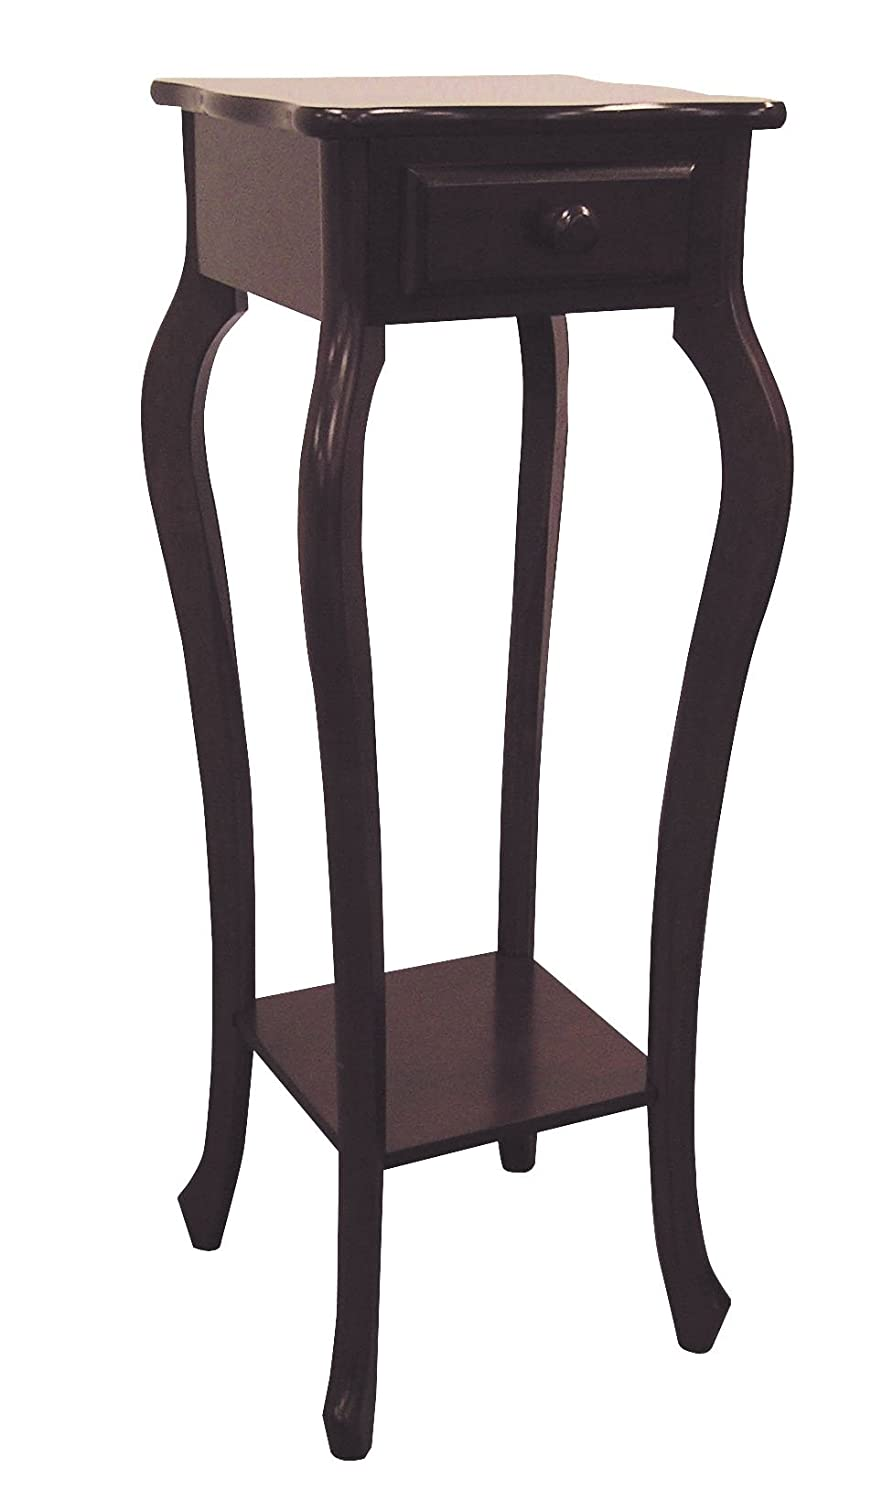 Ore International H-39 Plant Stand, Cherry